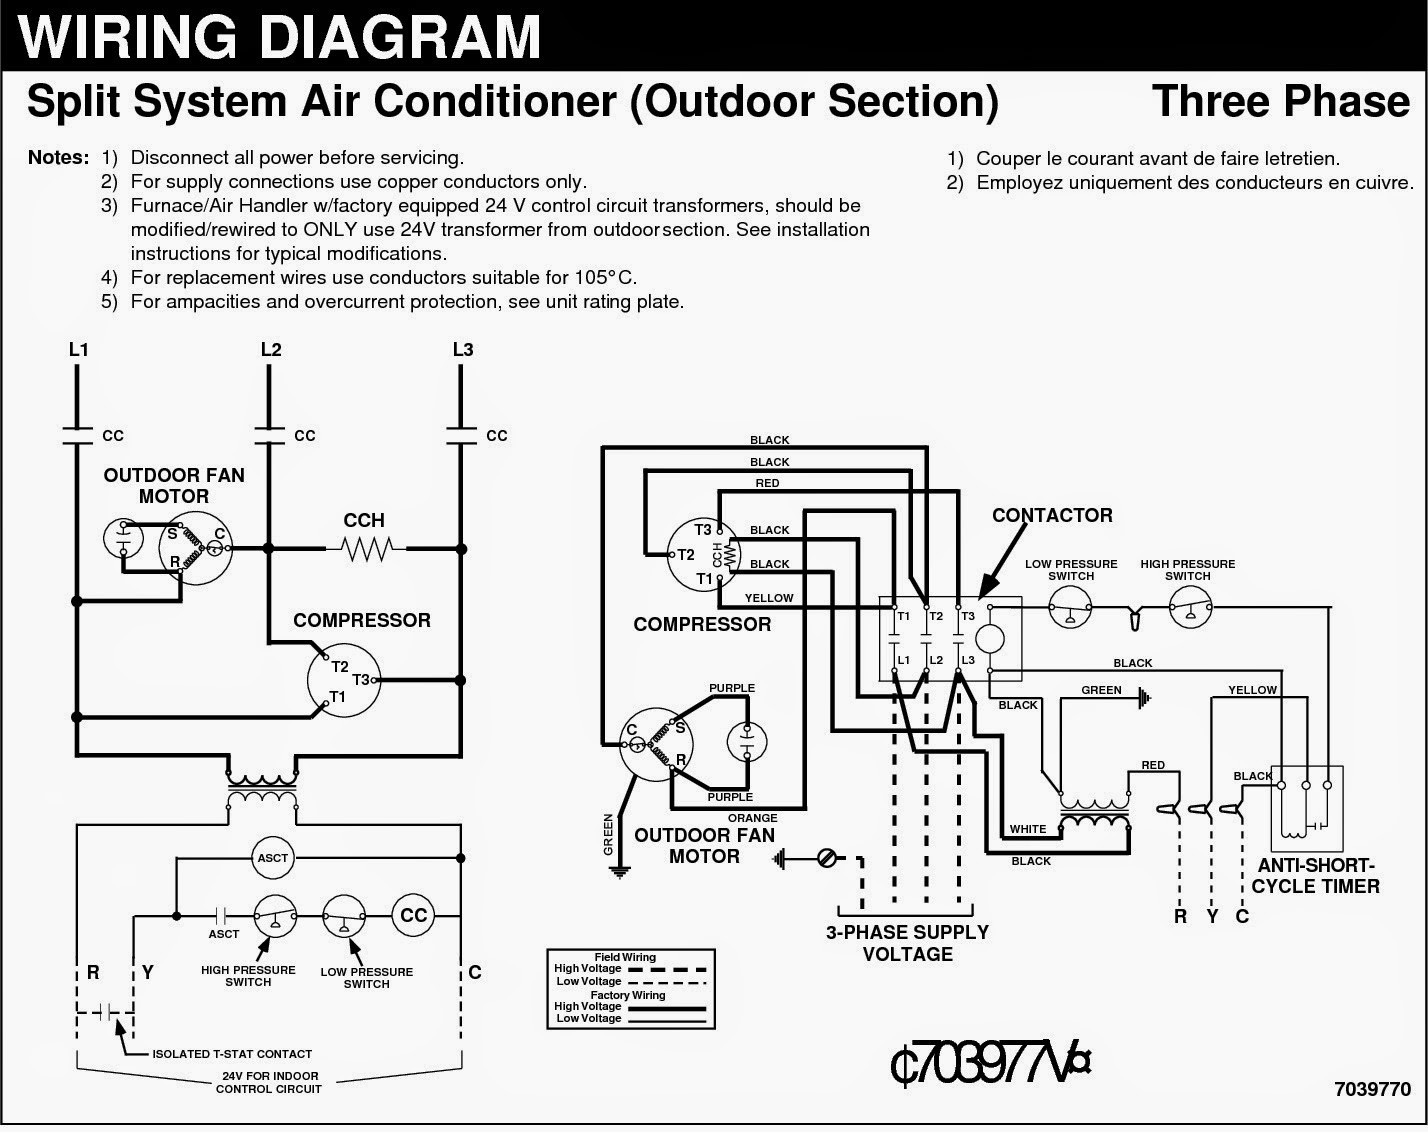 Electrical Wiring Diagrams For Air Conditioning on Dual Electric Fan Wiring Diagram